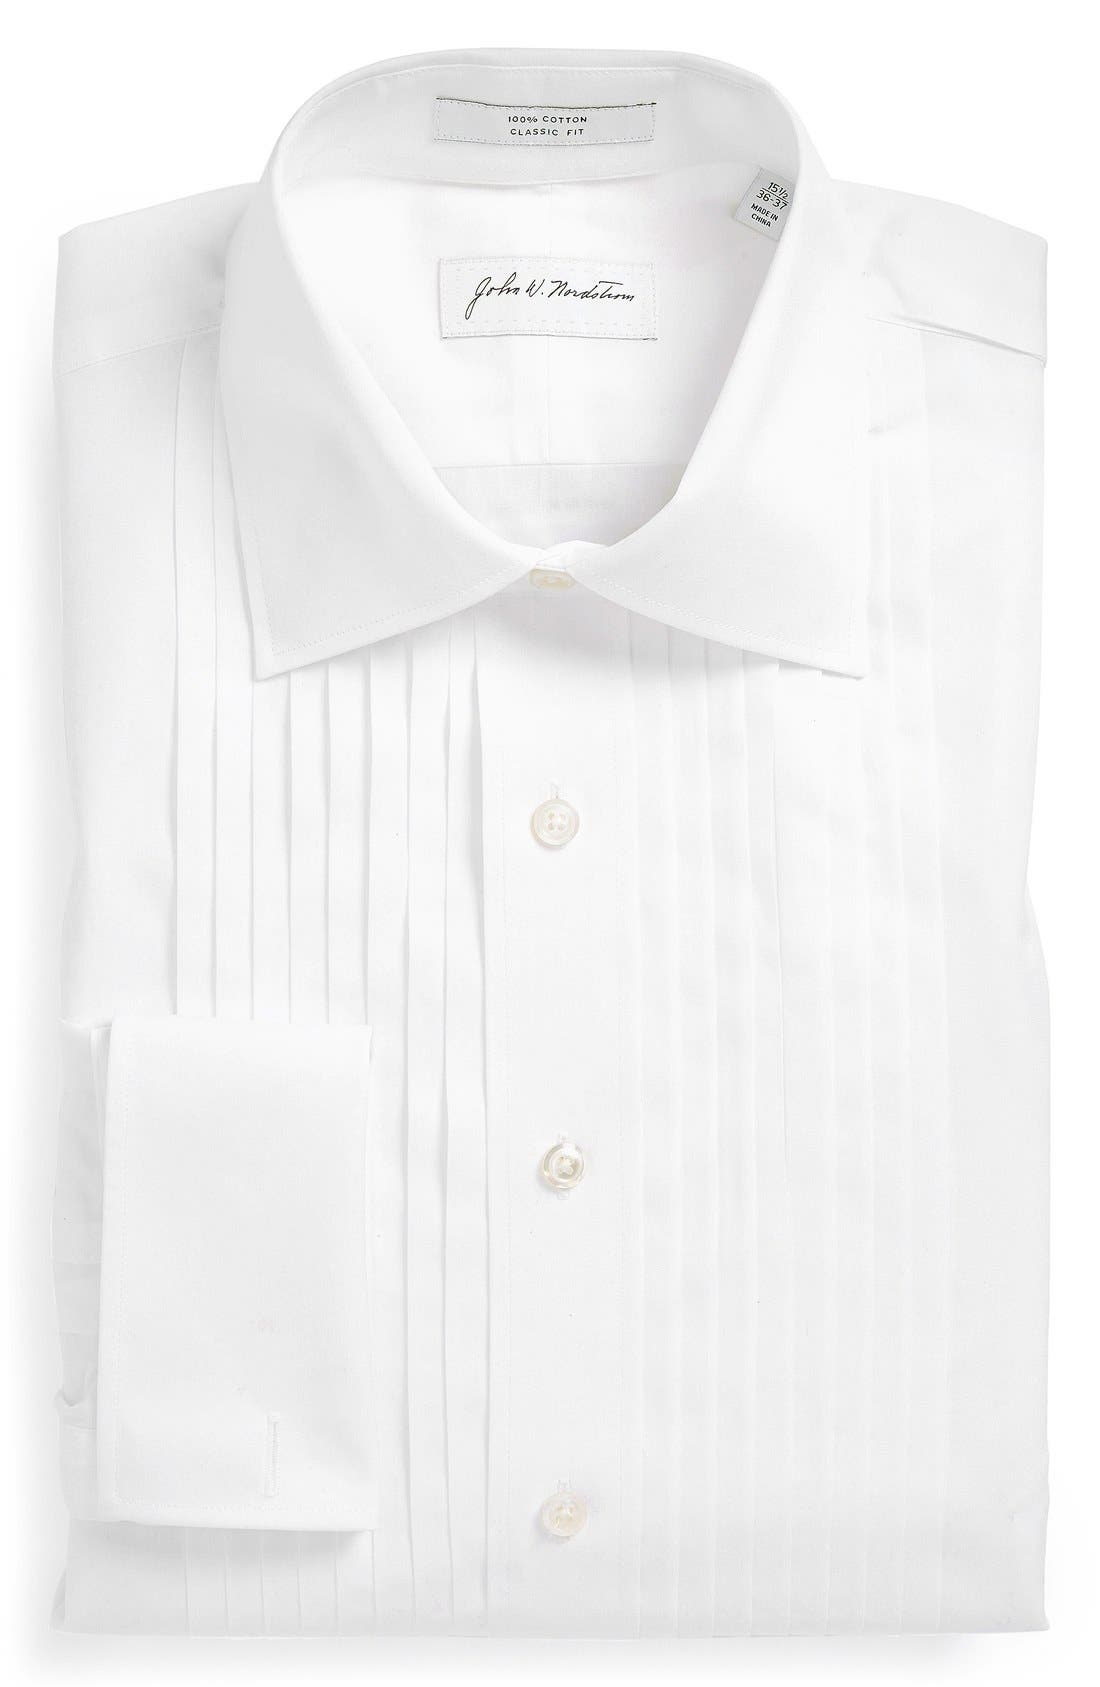 Classic Fit French Cuff Tuxedo Shirt, Main, color, 100